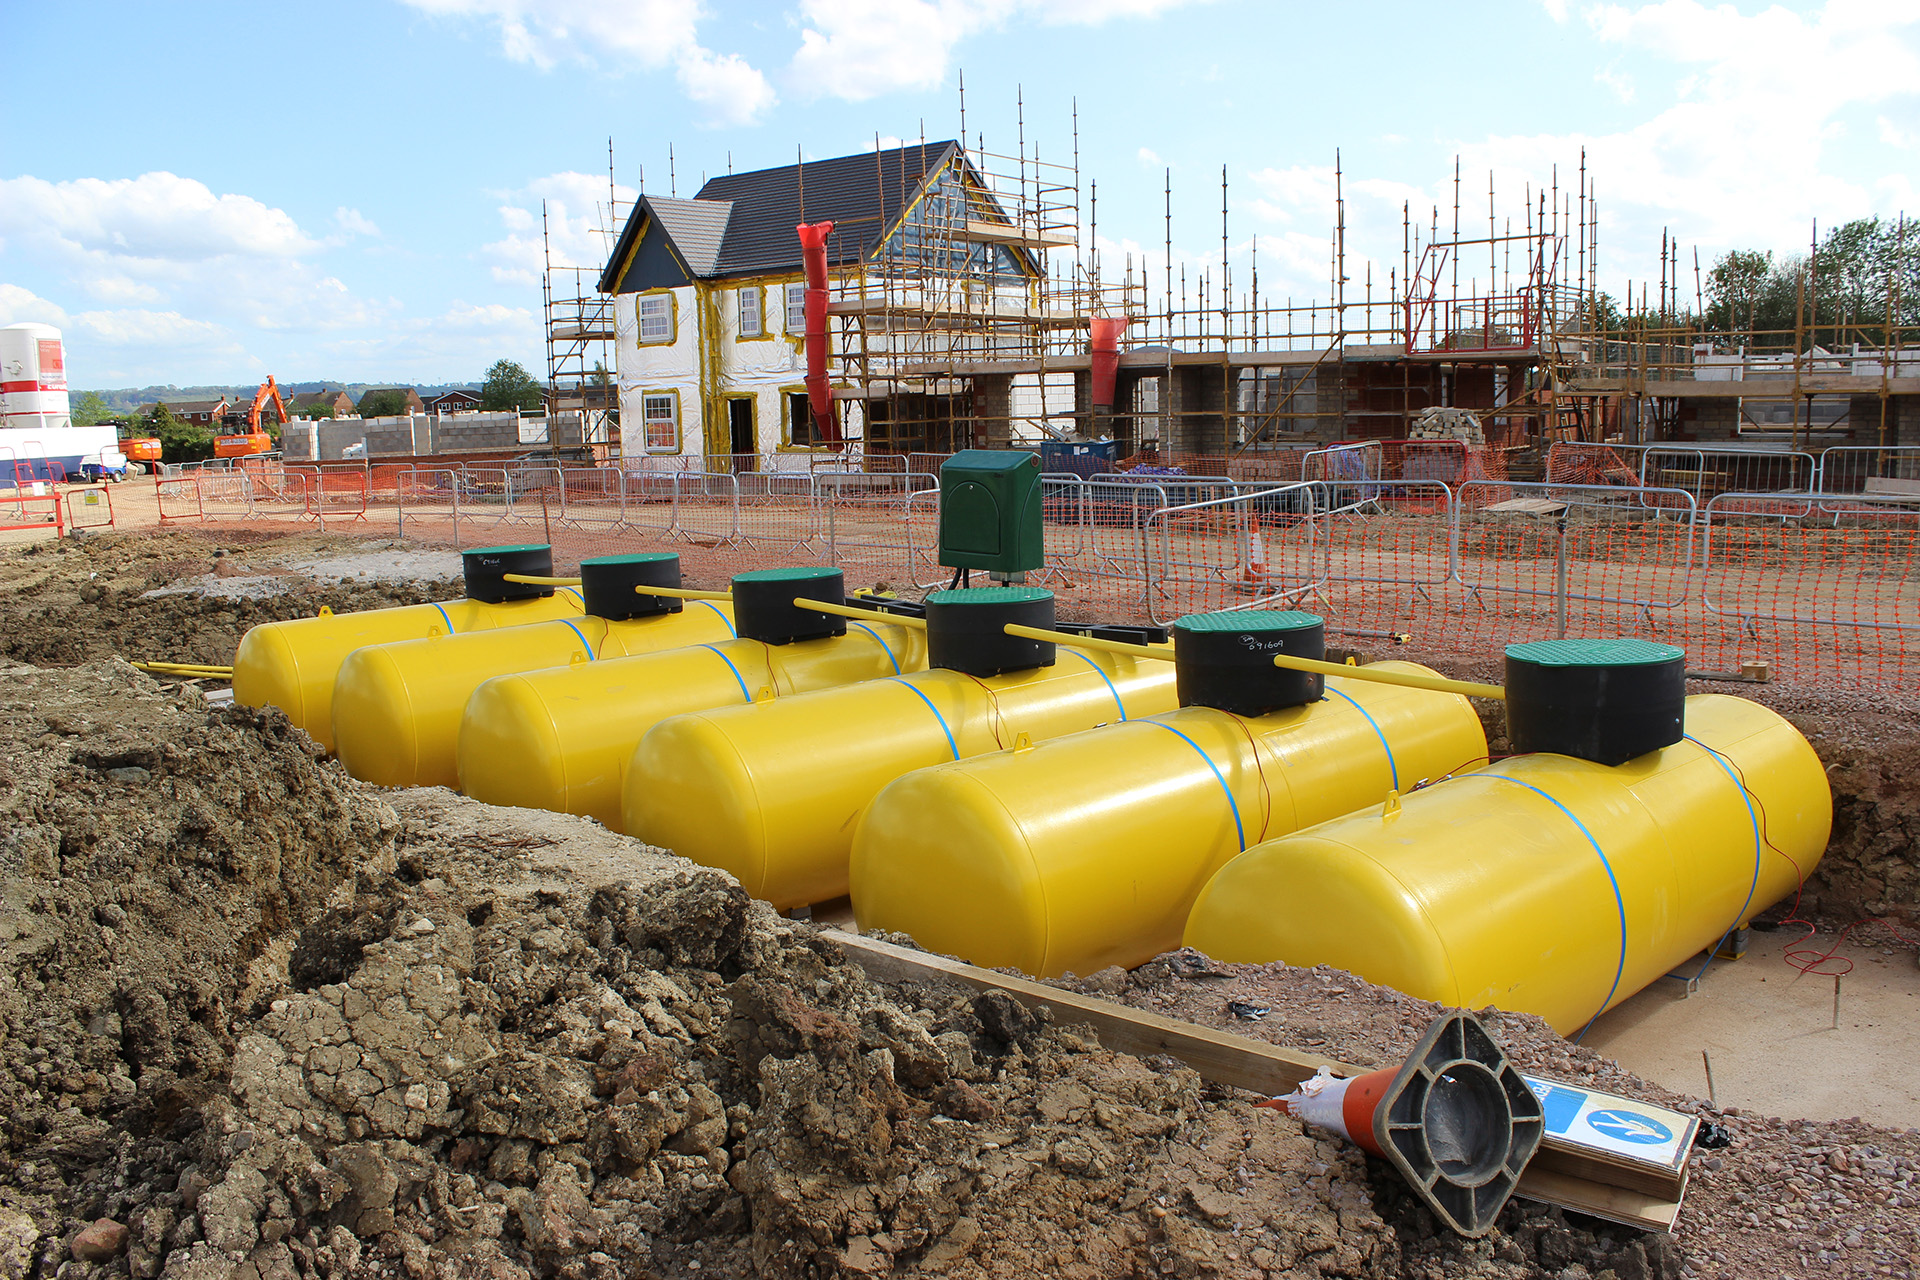 Several yellow LPG underground tanks in a row